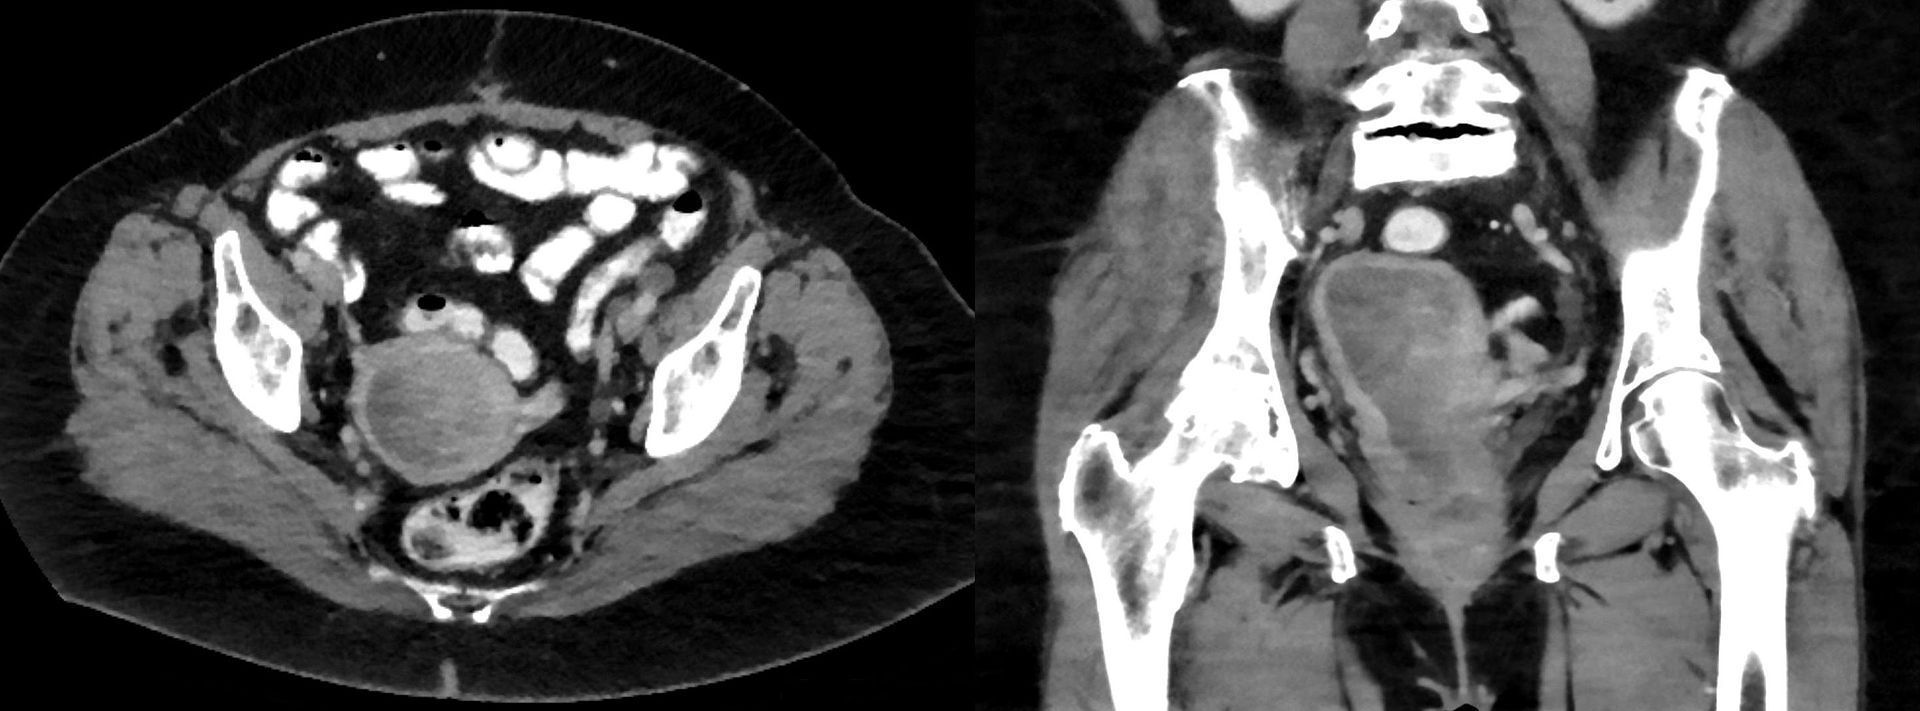 CT scan of pelvic area of a woman showing the enlarged uterus with uterine leiomyosarcoma.